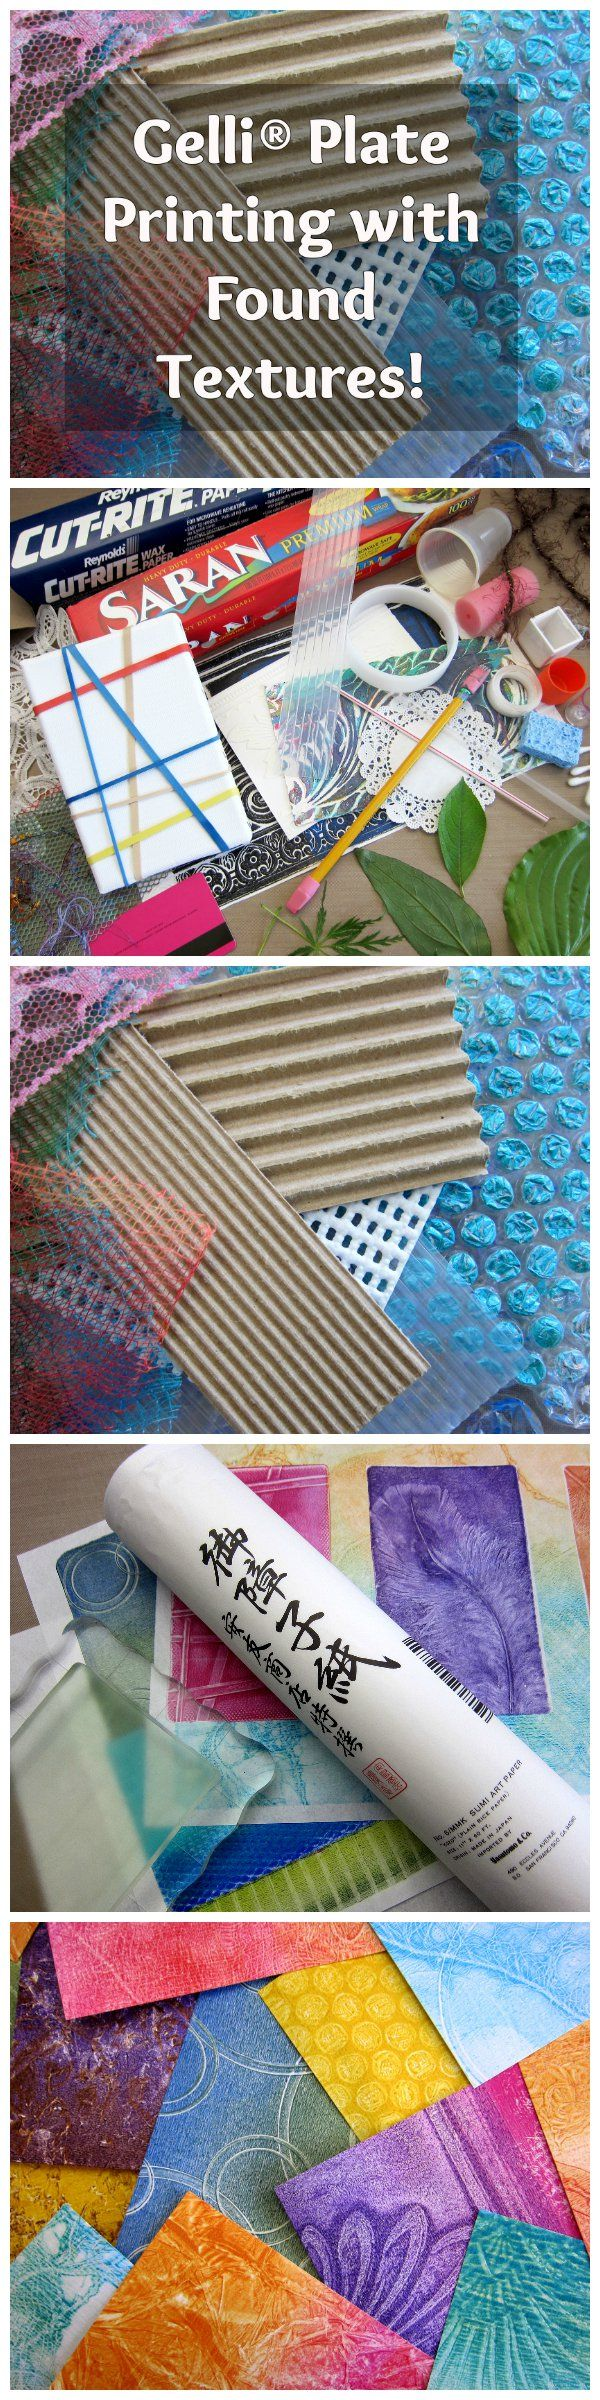 Gelli® Plate Printing with Found Textures and DIY Texture Tools! Blog post is loaded with great, inexpensive and fun ideas for Gelli printing!